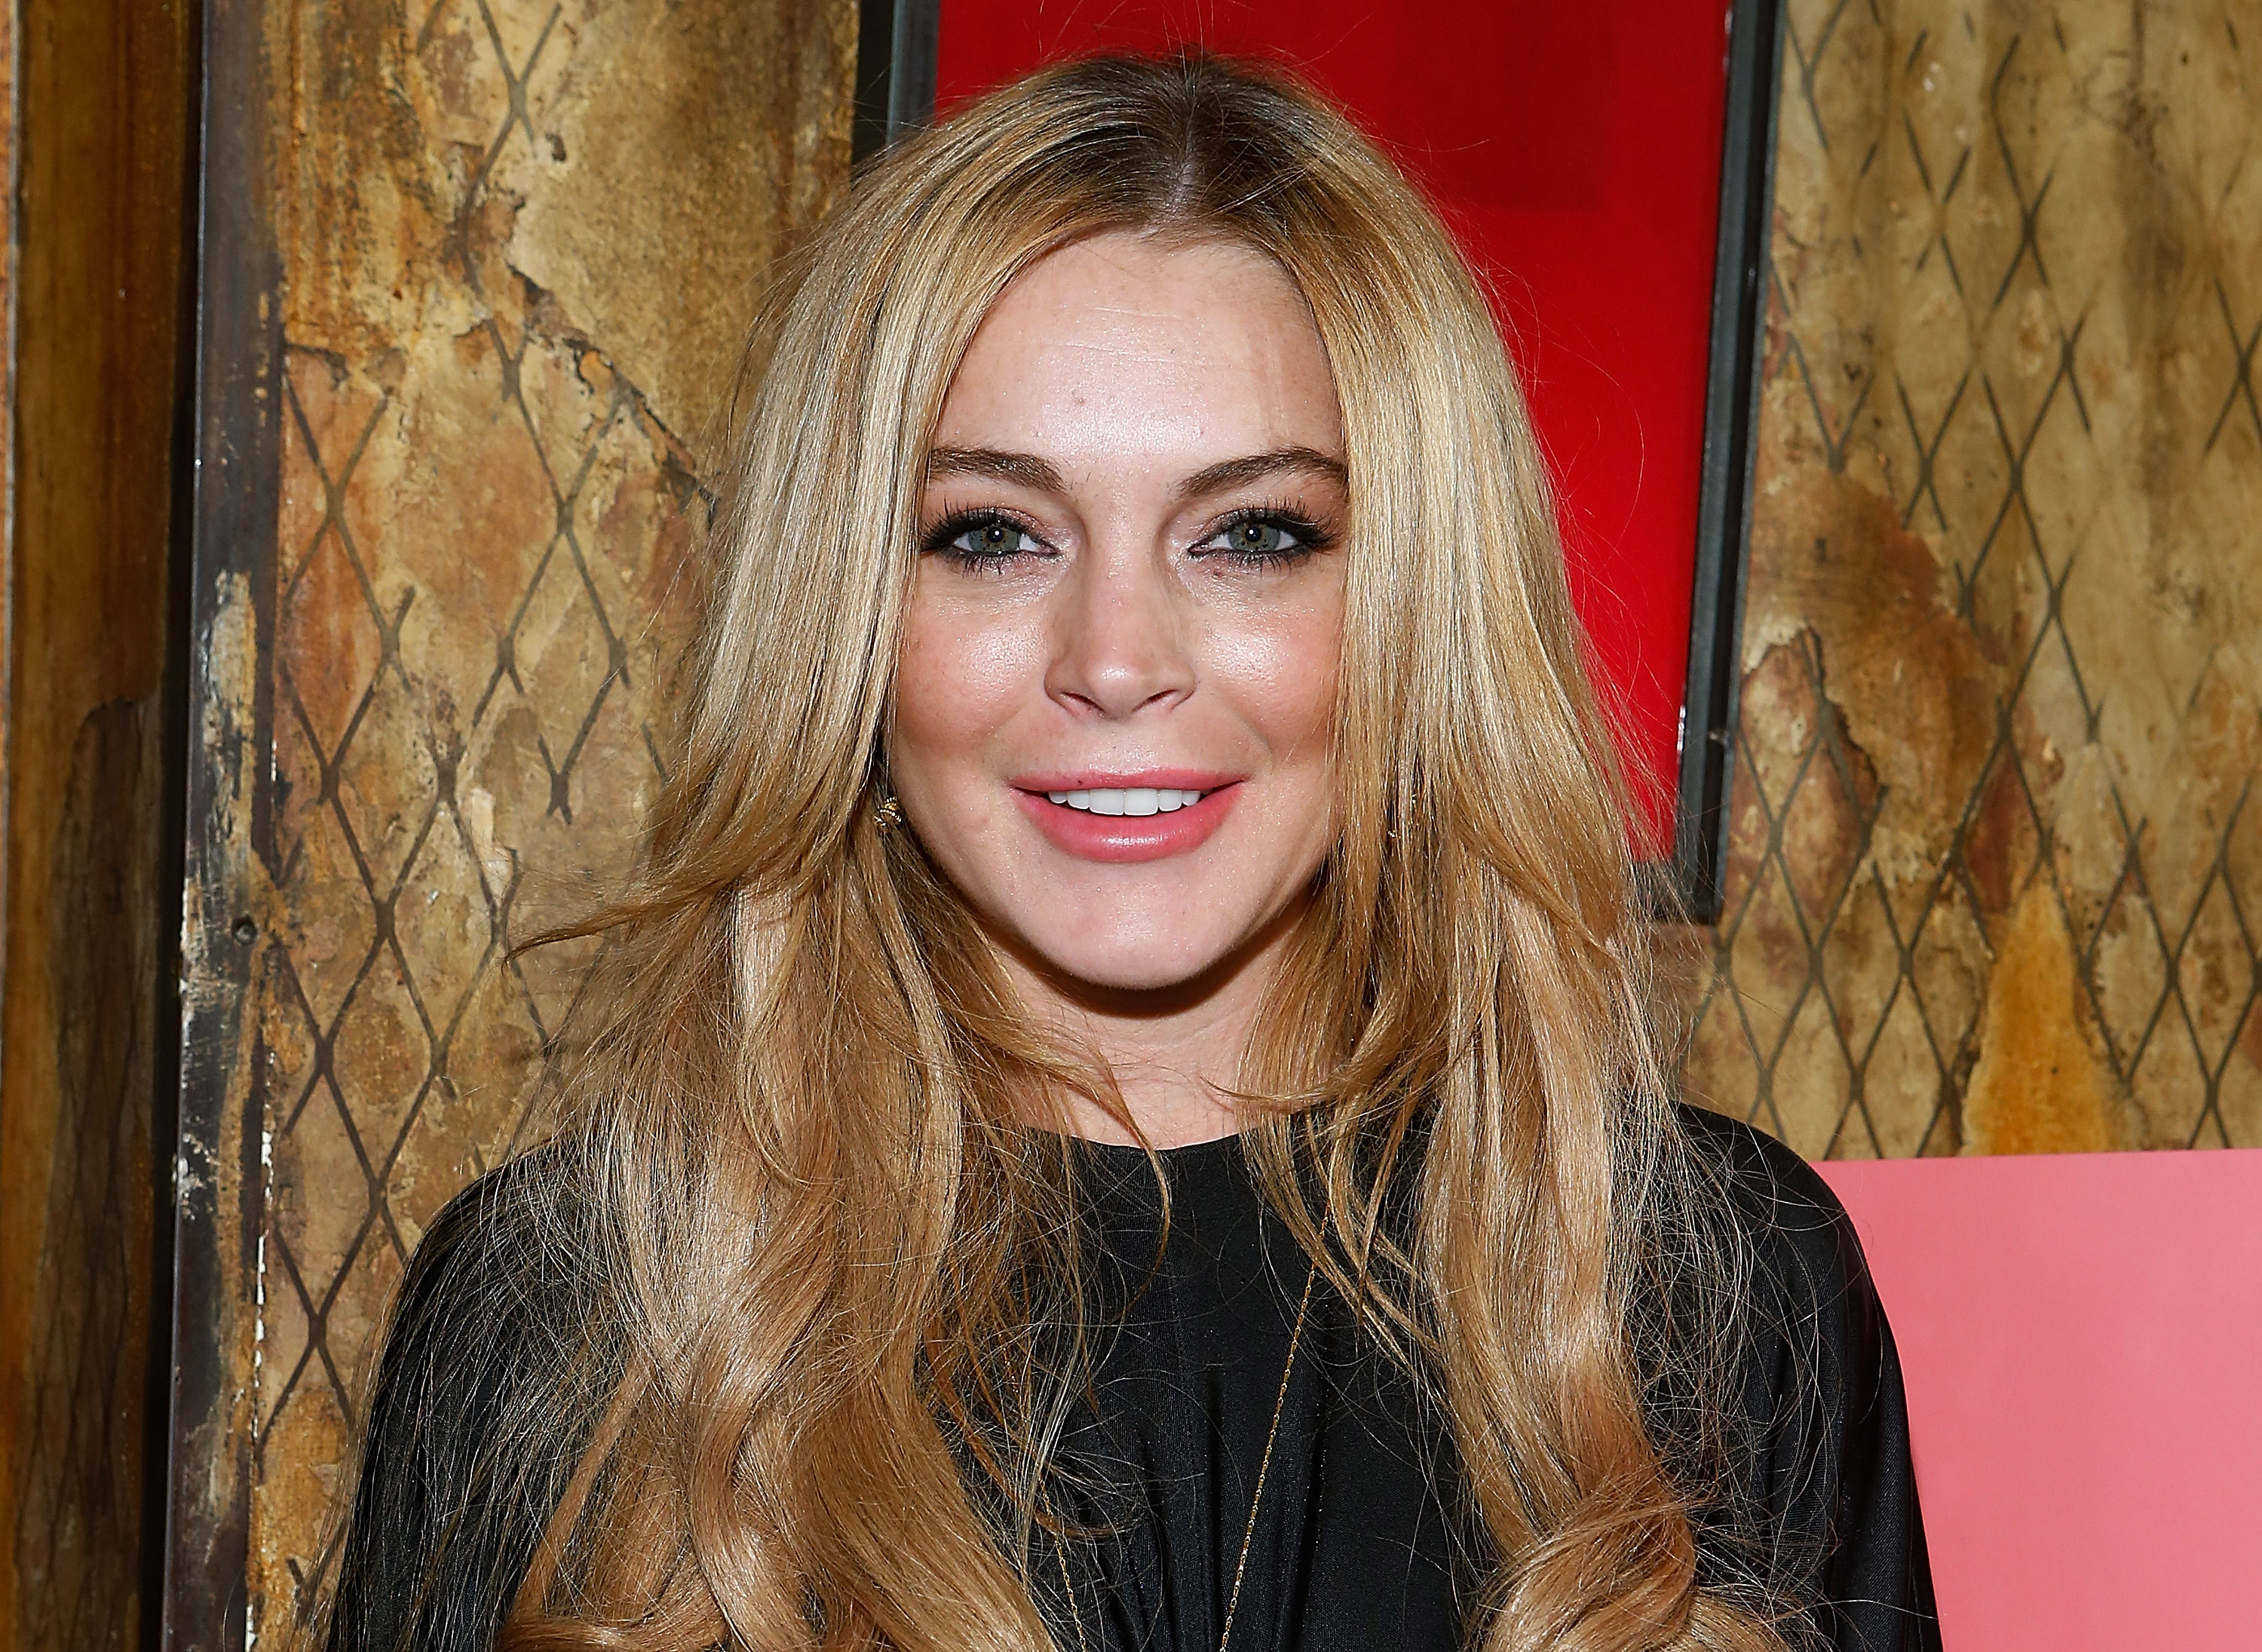 Linsay Lohan at Pravda on December 16, 2013 in New York City.